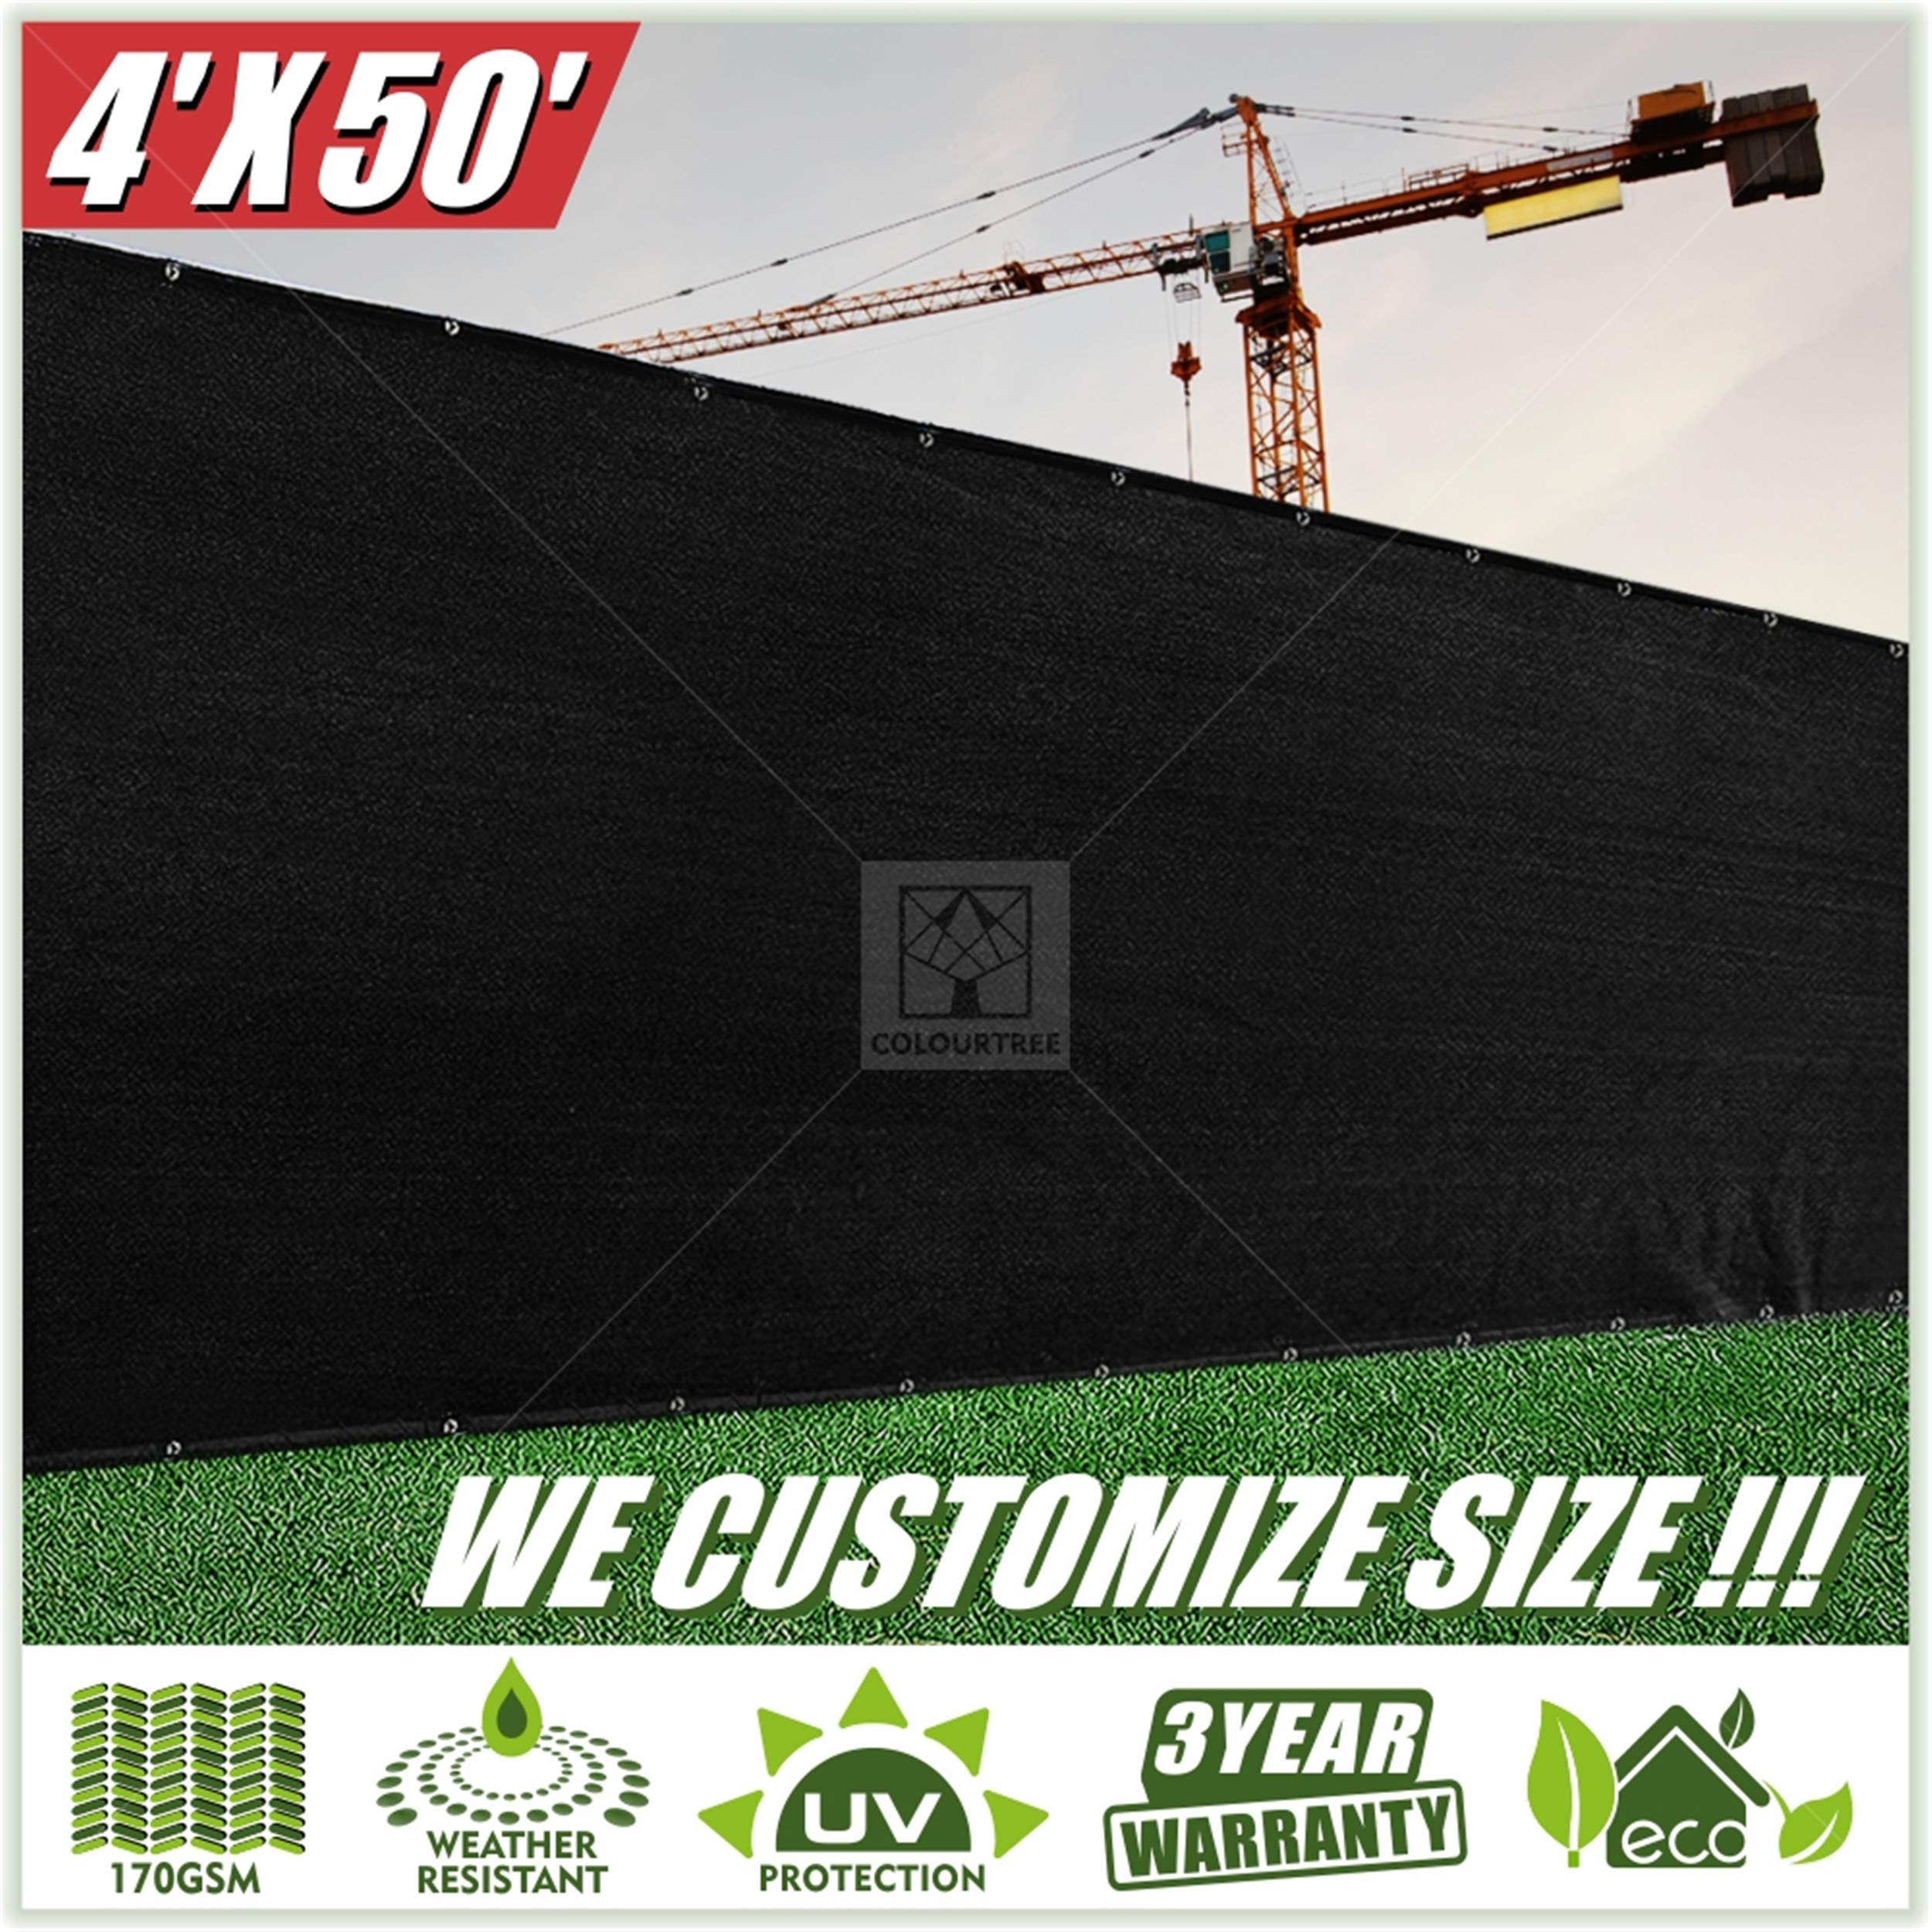 ColourTree 2nd Generation 4' x 50' Black Fence Privacy Screen Windscreen Cover Fabric Shade Tarp Netting Mesh Cloth - Commercial Grade 170 GSM - Heavy Duty - 3 Years Warranty - CUSTOM SIZE AVAILABLE by ColourTree